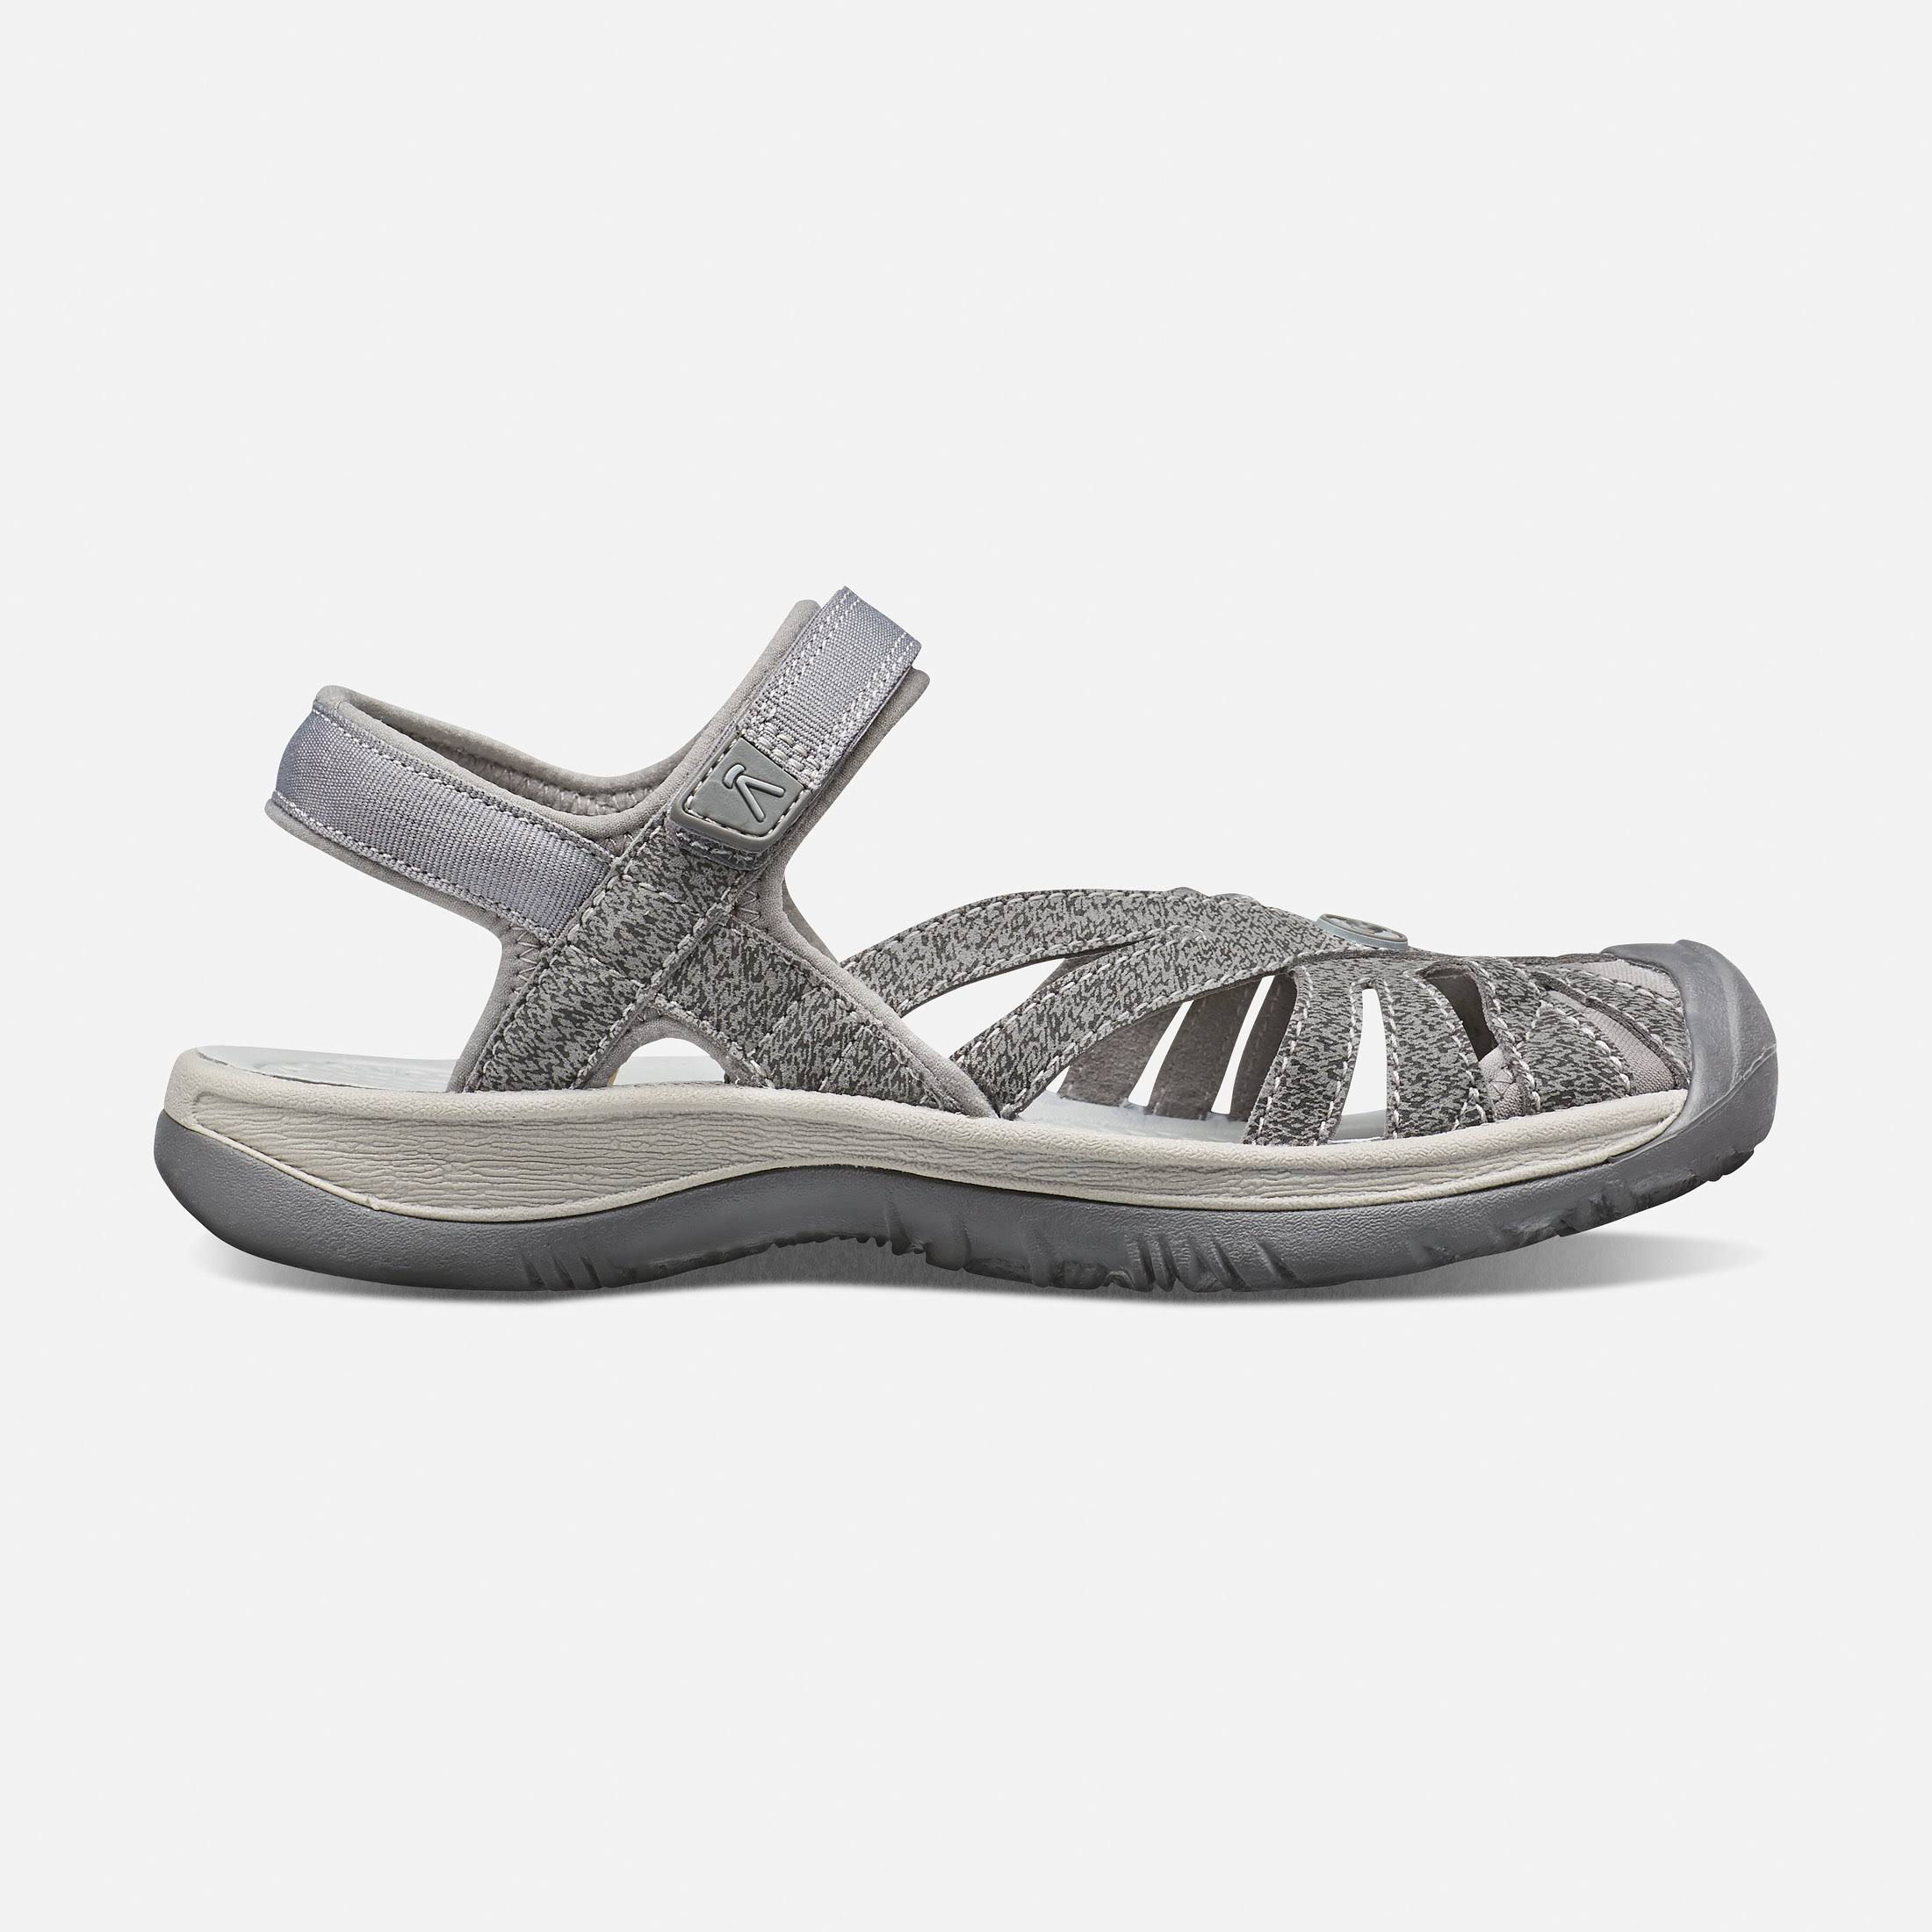 Keen Womens Rose Sandals - Gargoyle/Raven, 8US